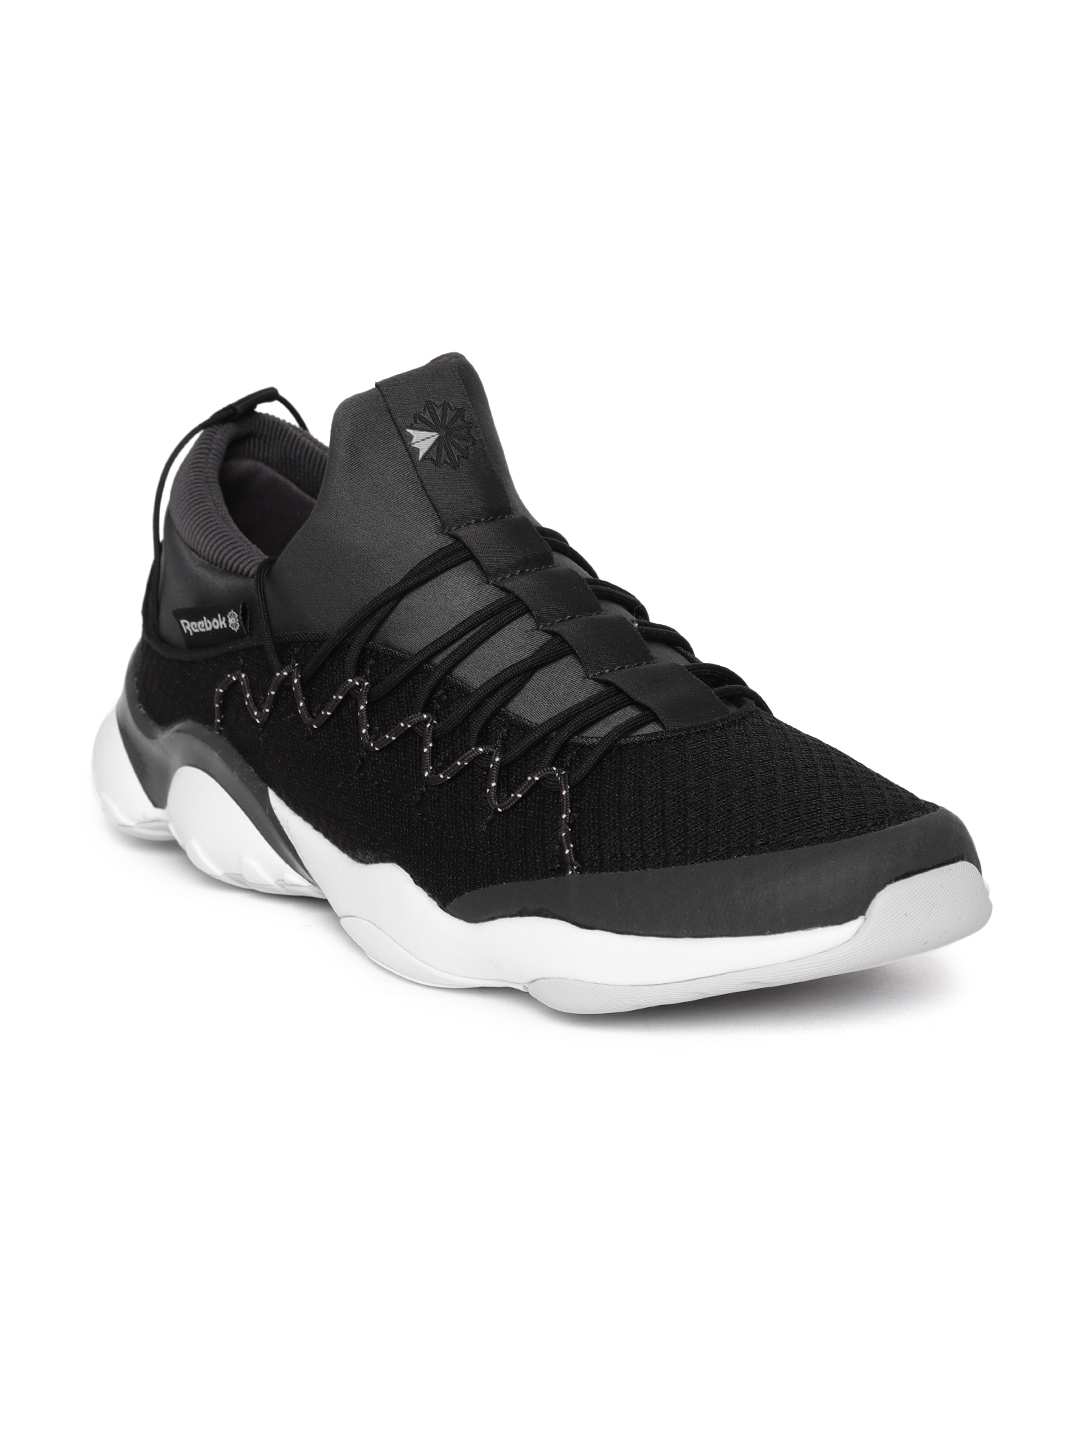 Buy Reebok Classic Unisex Black DMX Fusion Lite Sneakers - Casual ... 594326512